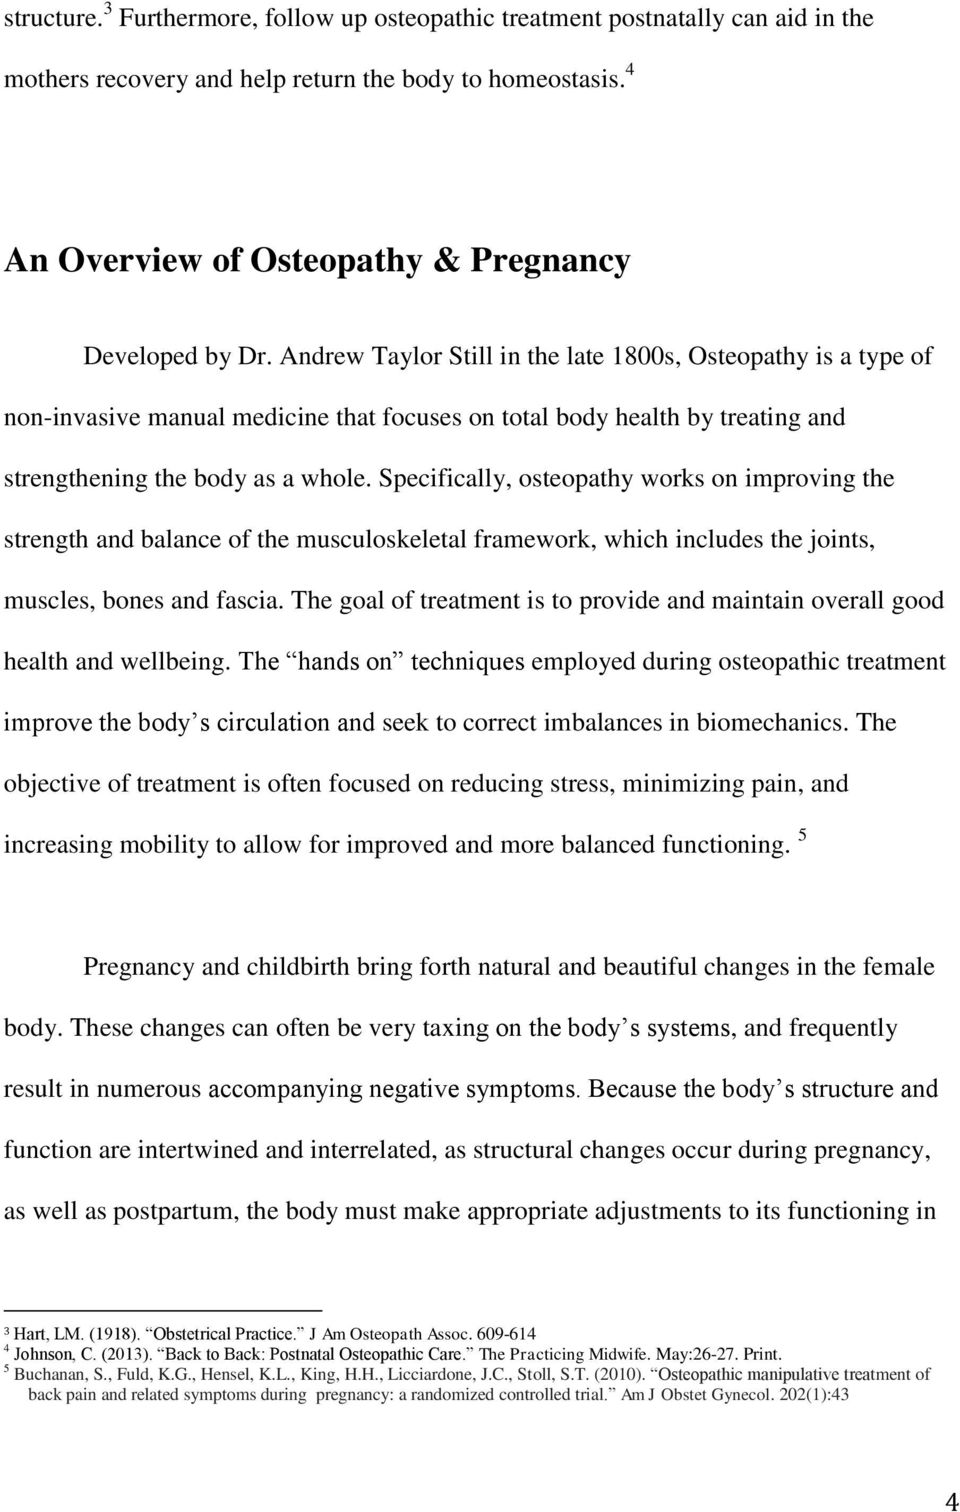 Osteopractic after childbirth: the rapid recovery of a young mother 79